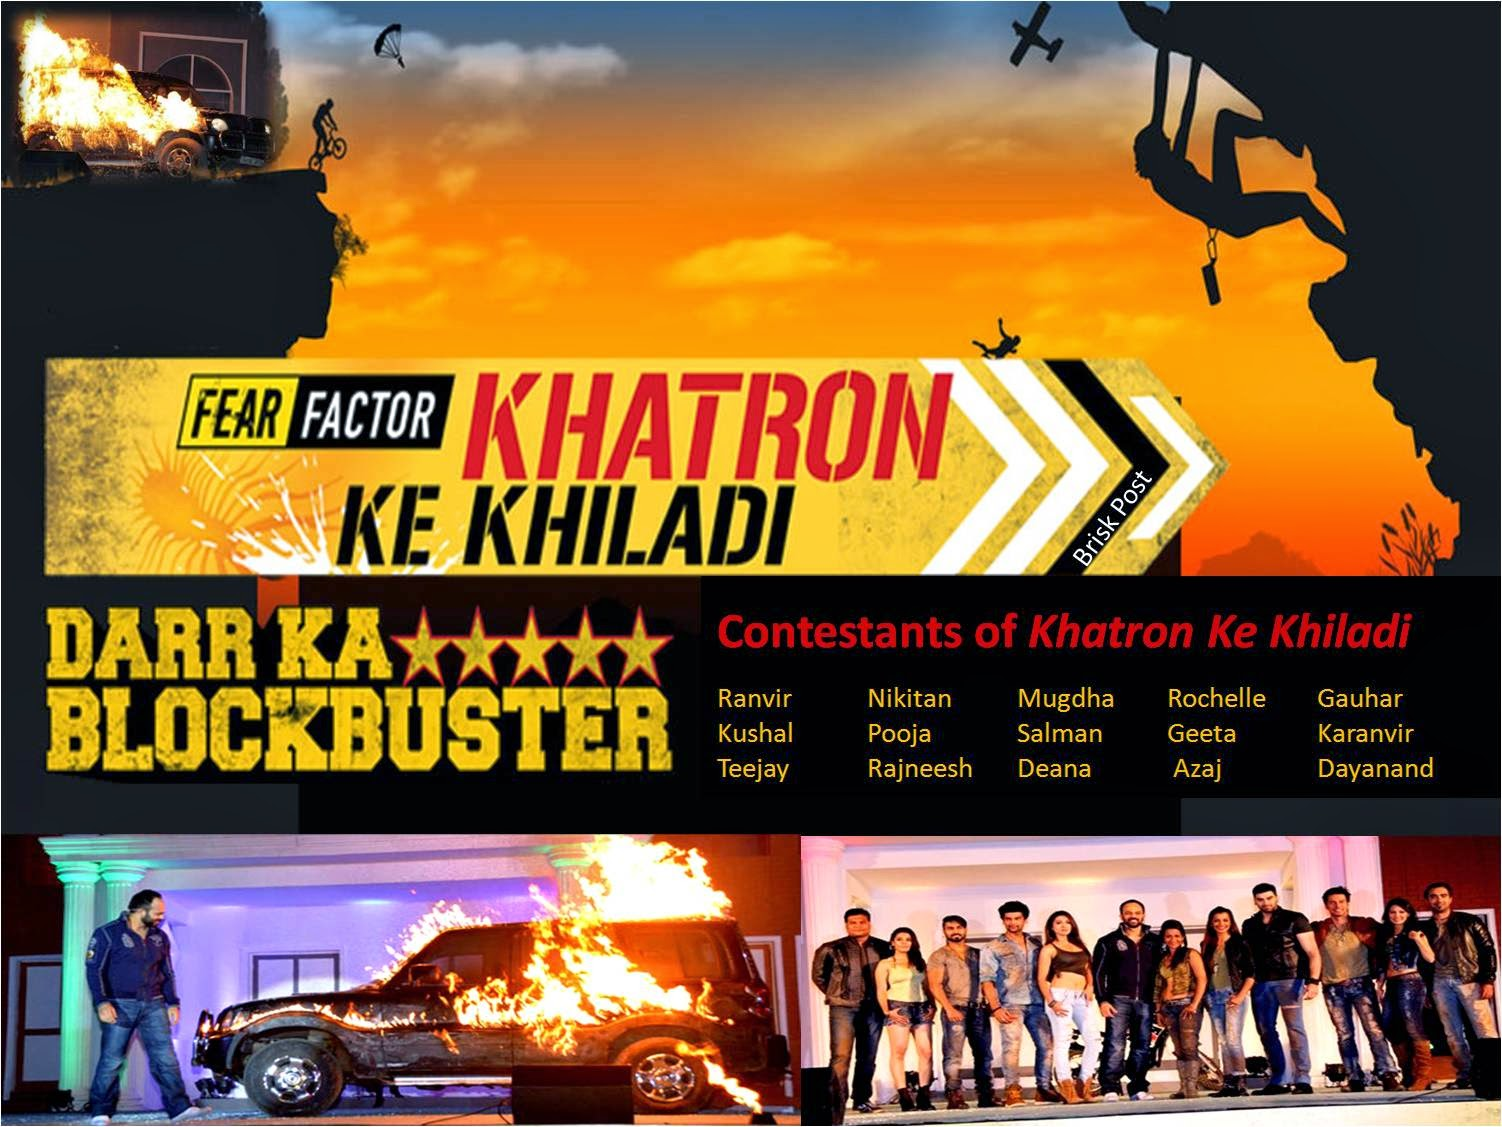 15 Contestants of Khatron Ke Khiladi: Dar Ka Blockbuster with Rohit Shetty